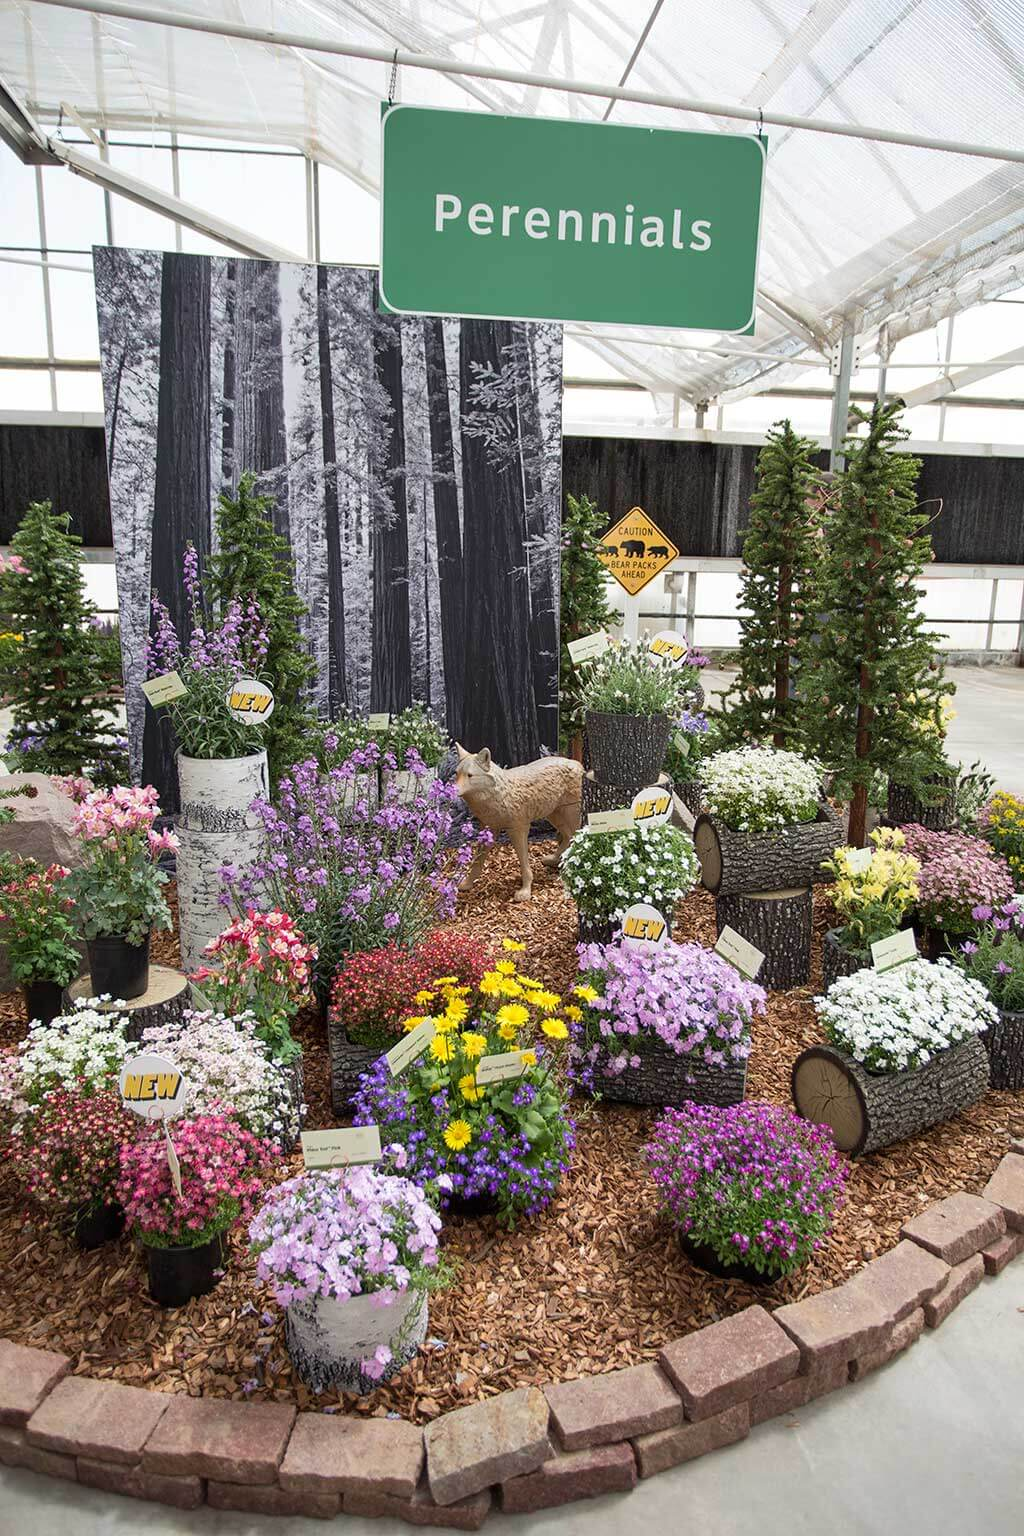 drive-swim-fly-california-spring-trials-gilroy-perennials-coyote